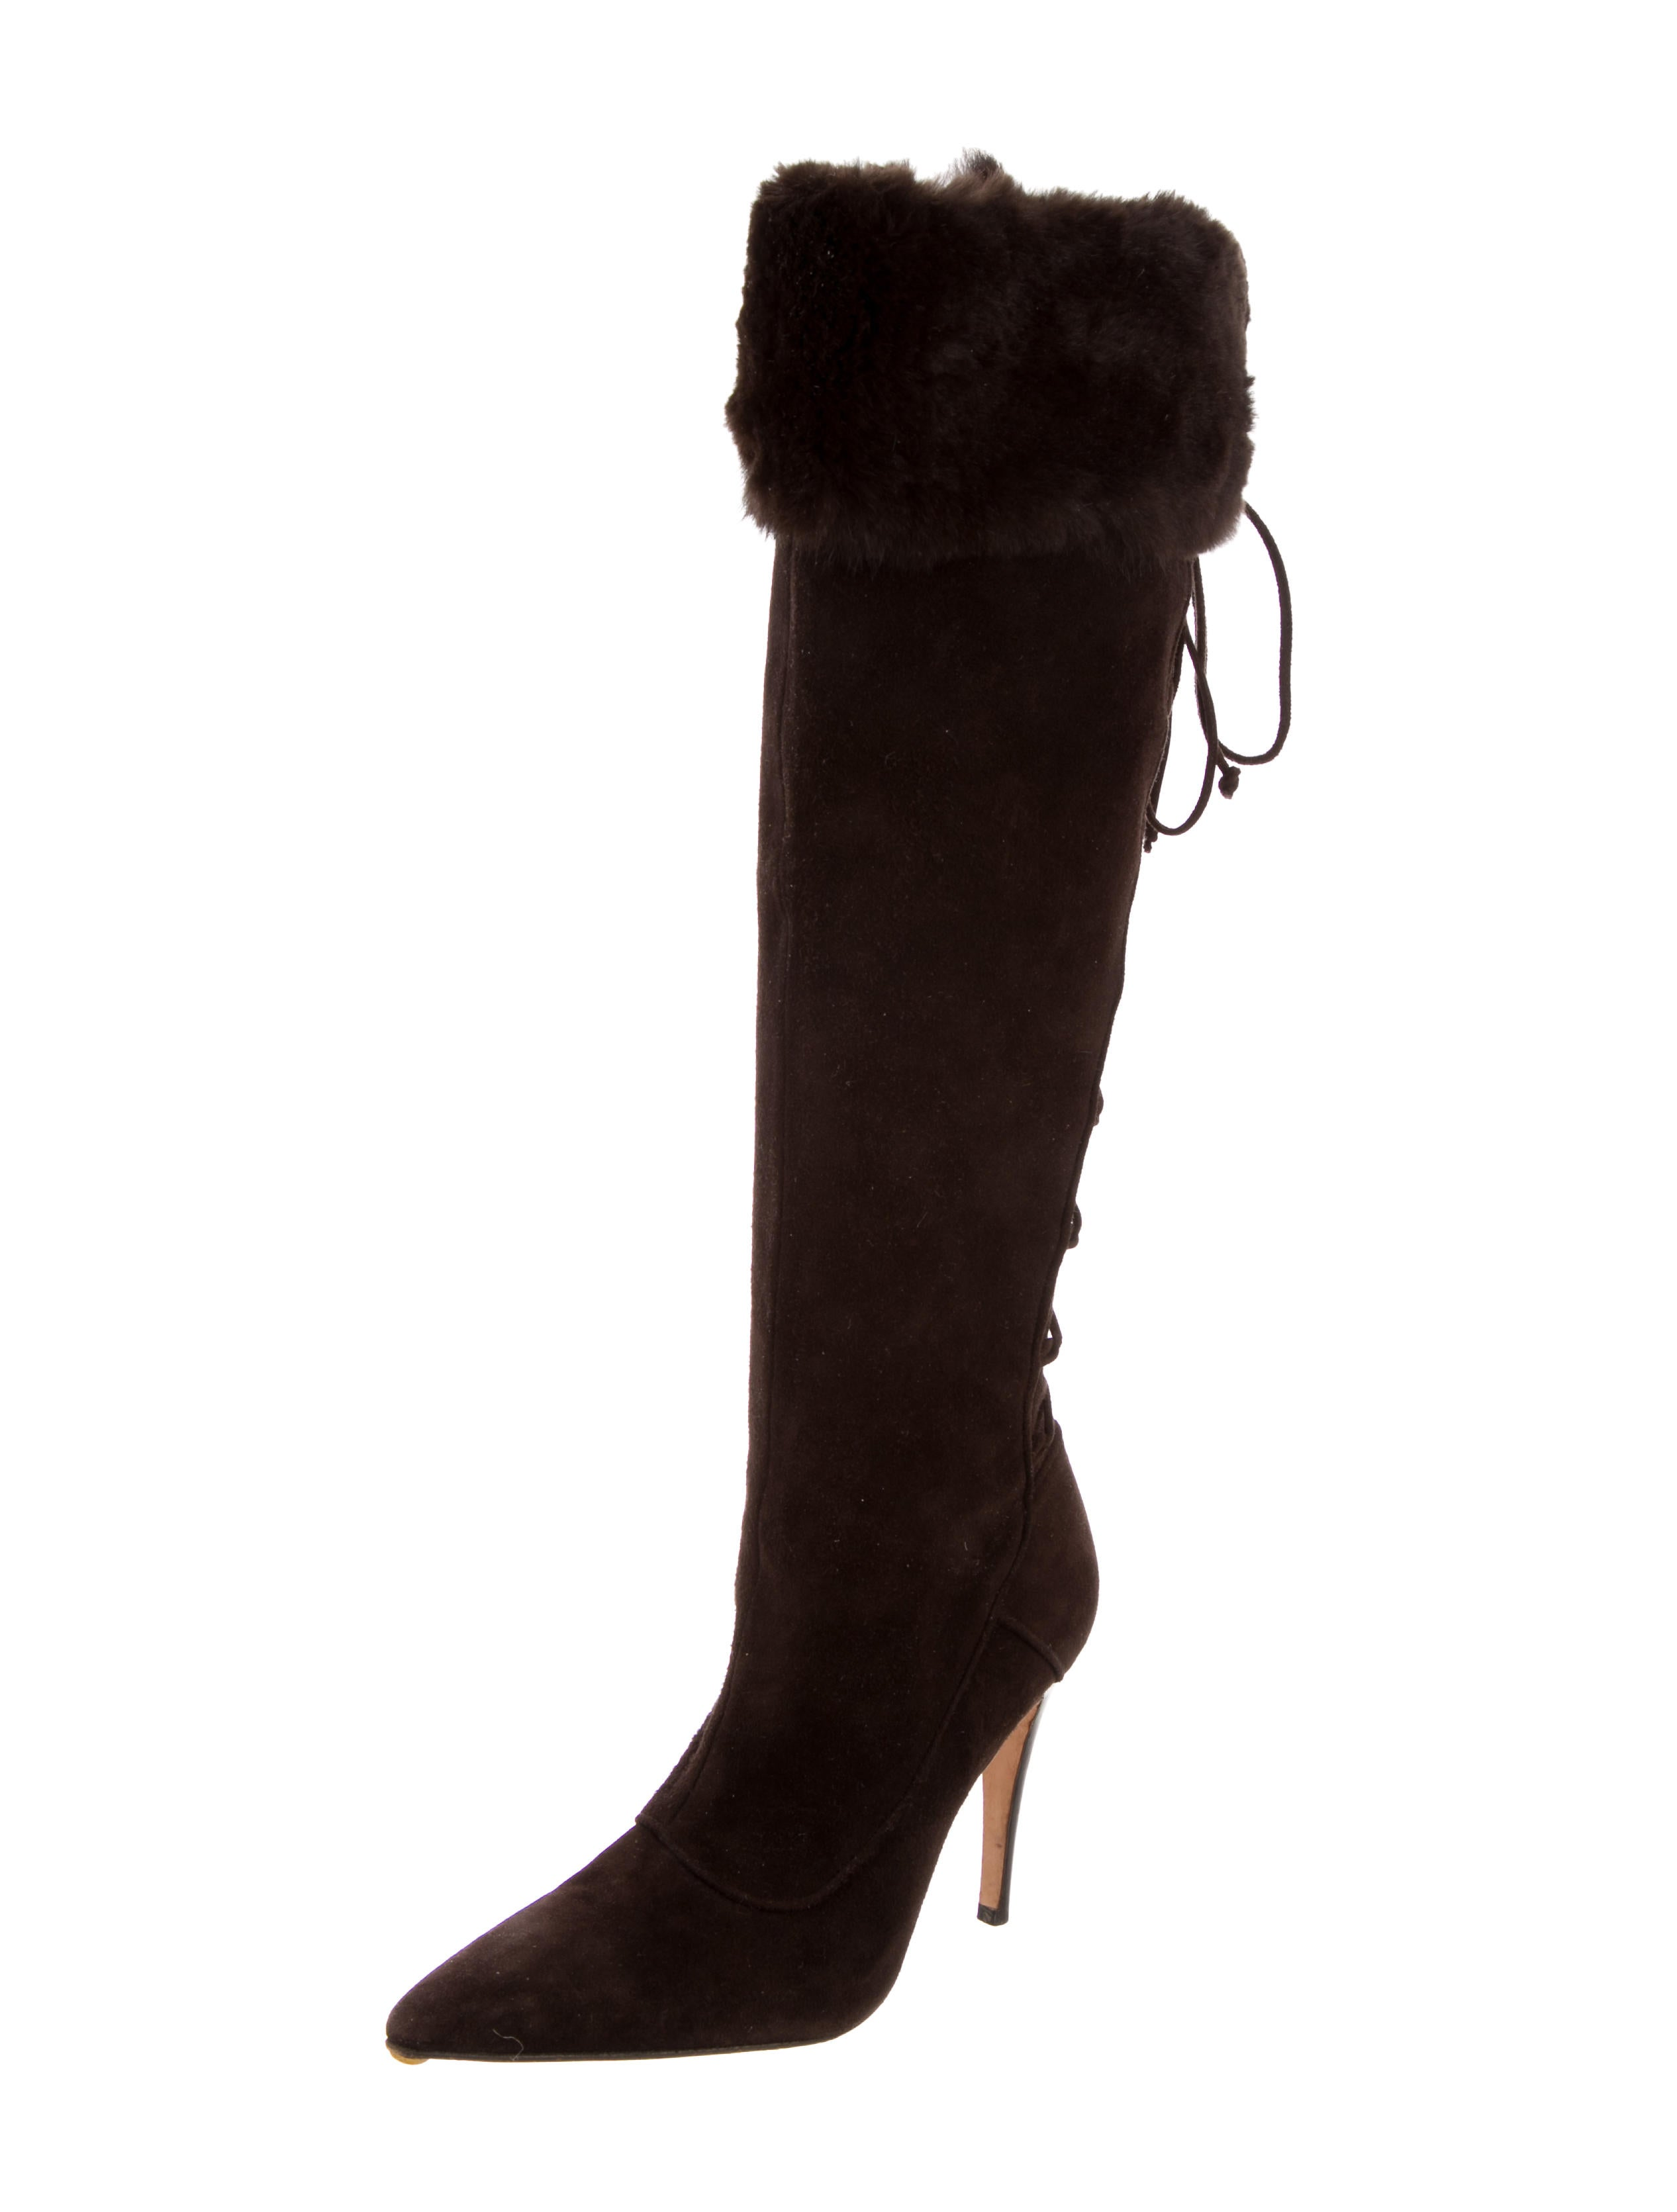 manolo blahnik fur trimmed suede boots shoes moo54818